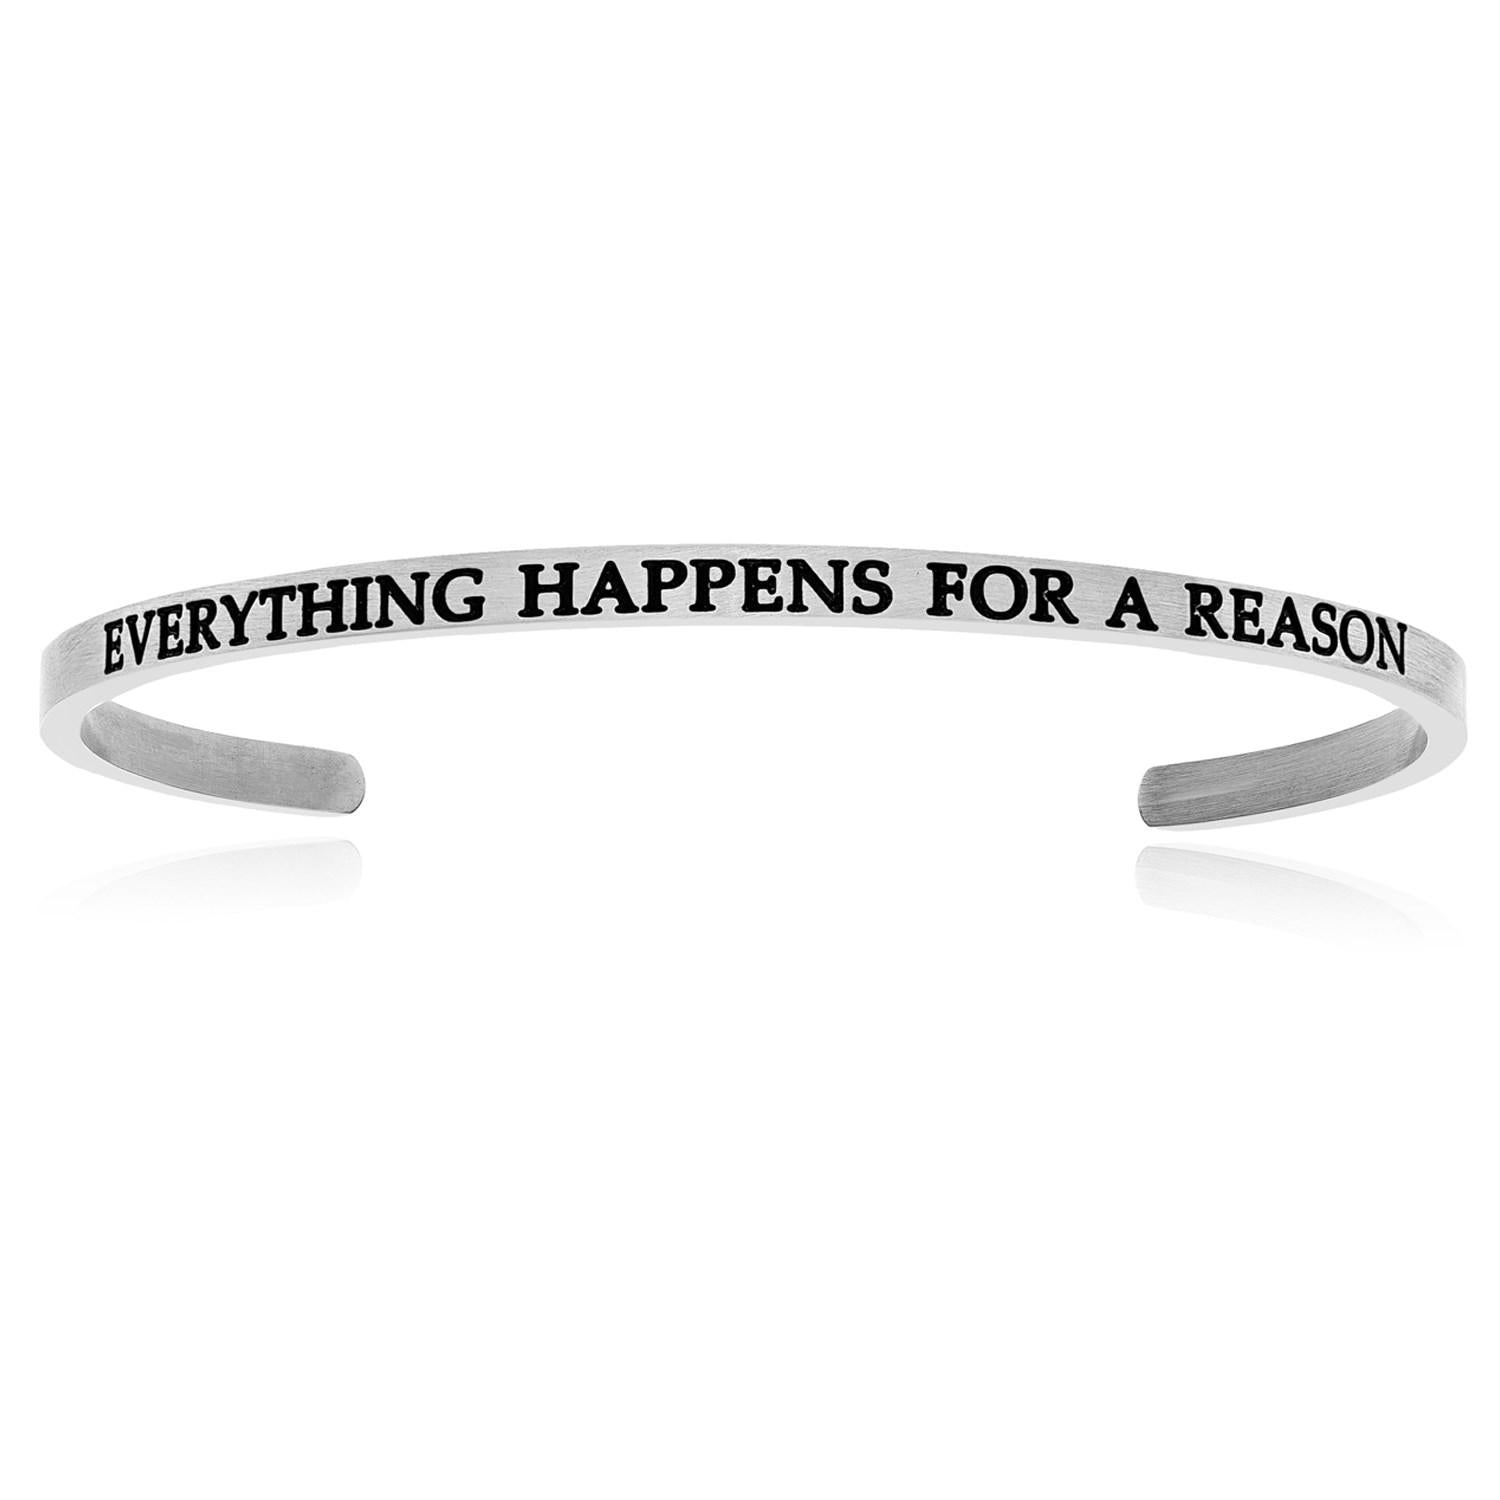 Stainless Steel Everything Happens For A Reason Cuff Bracelet